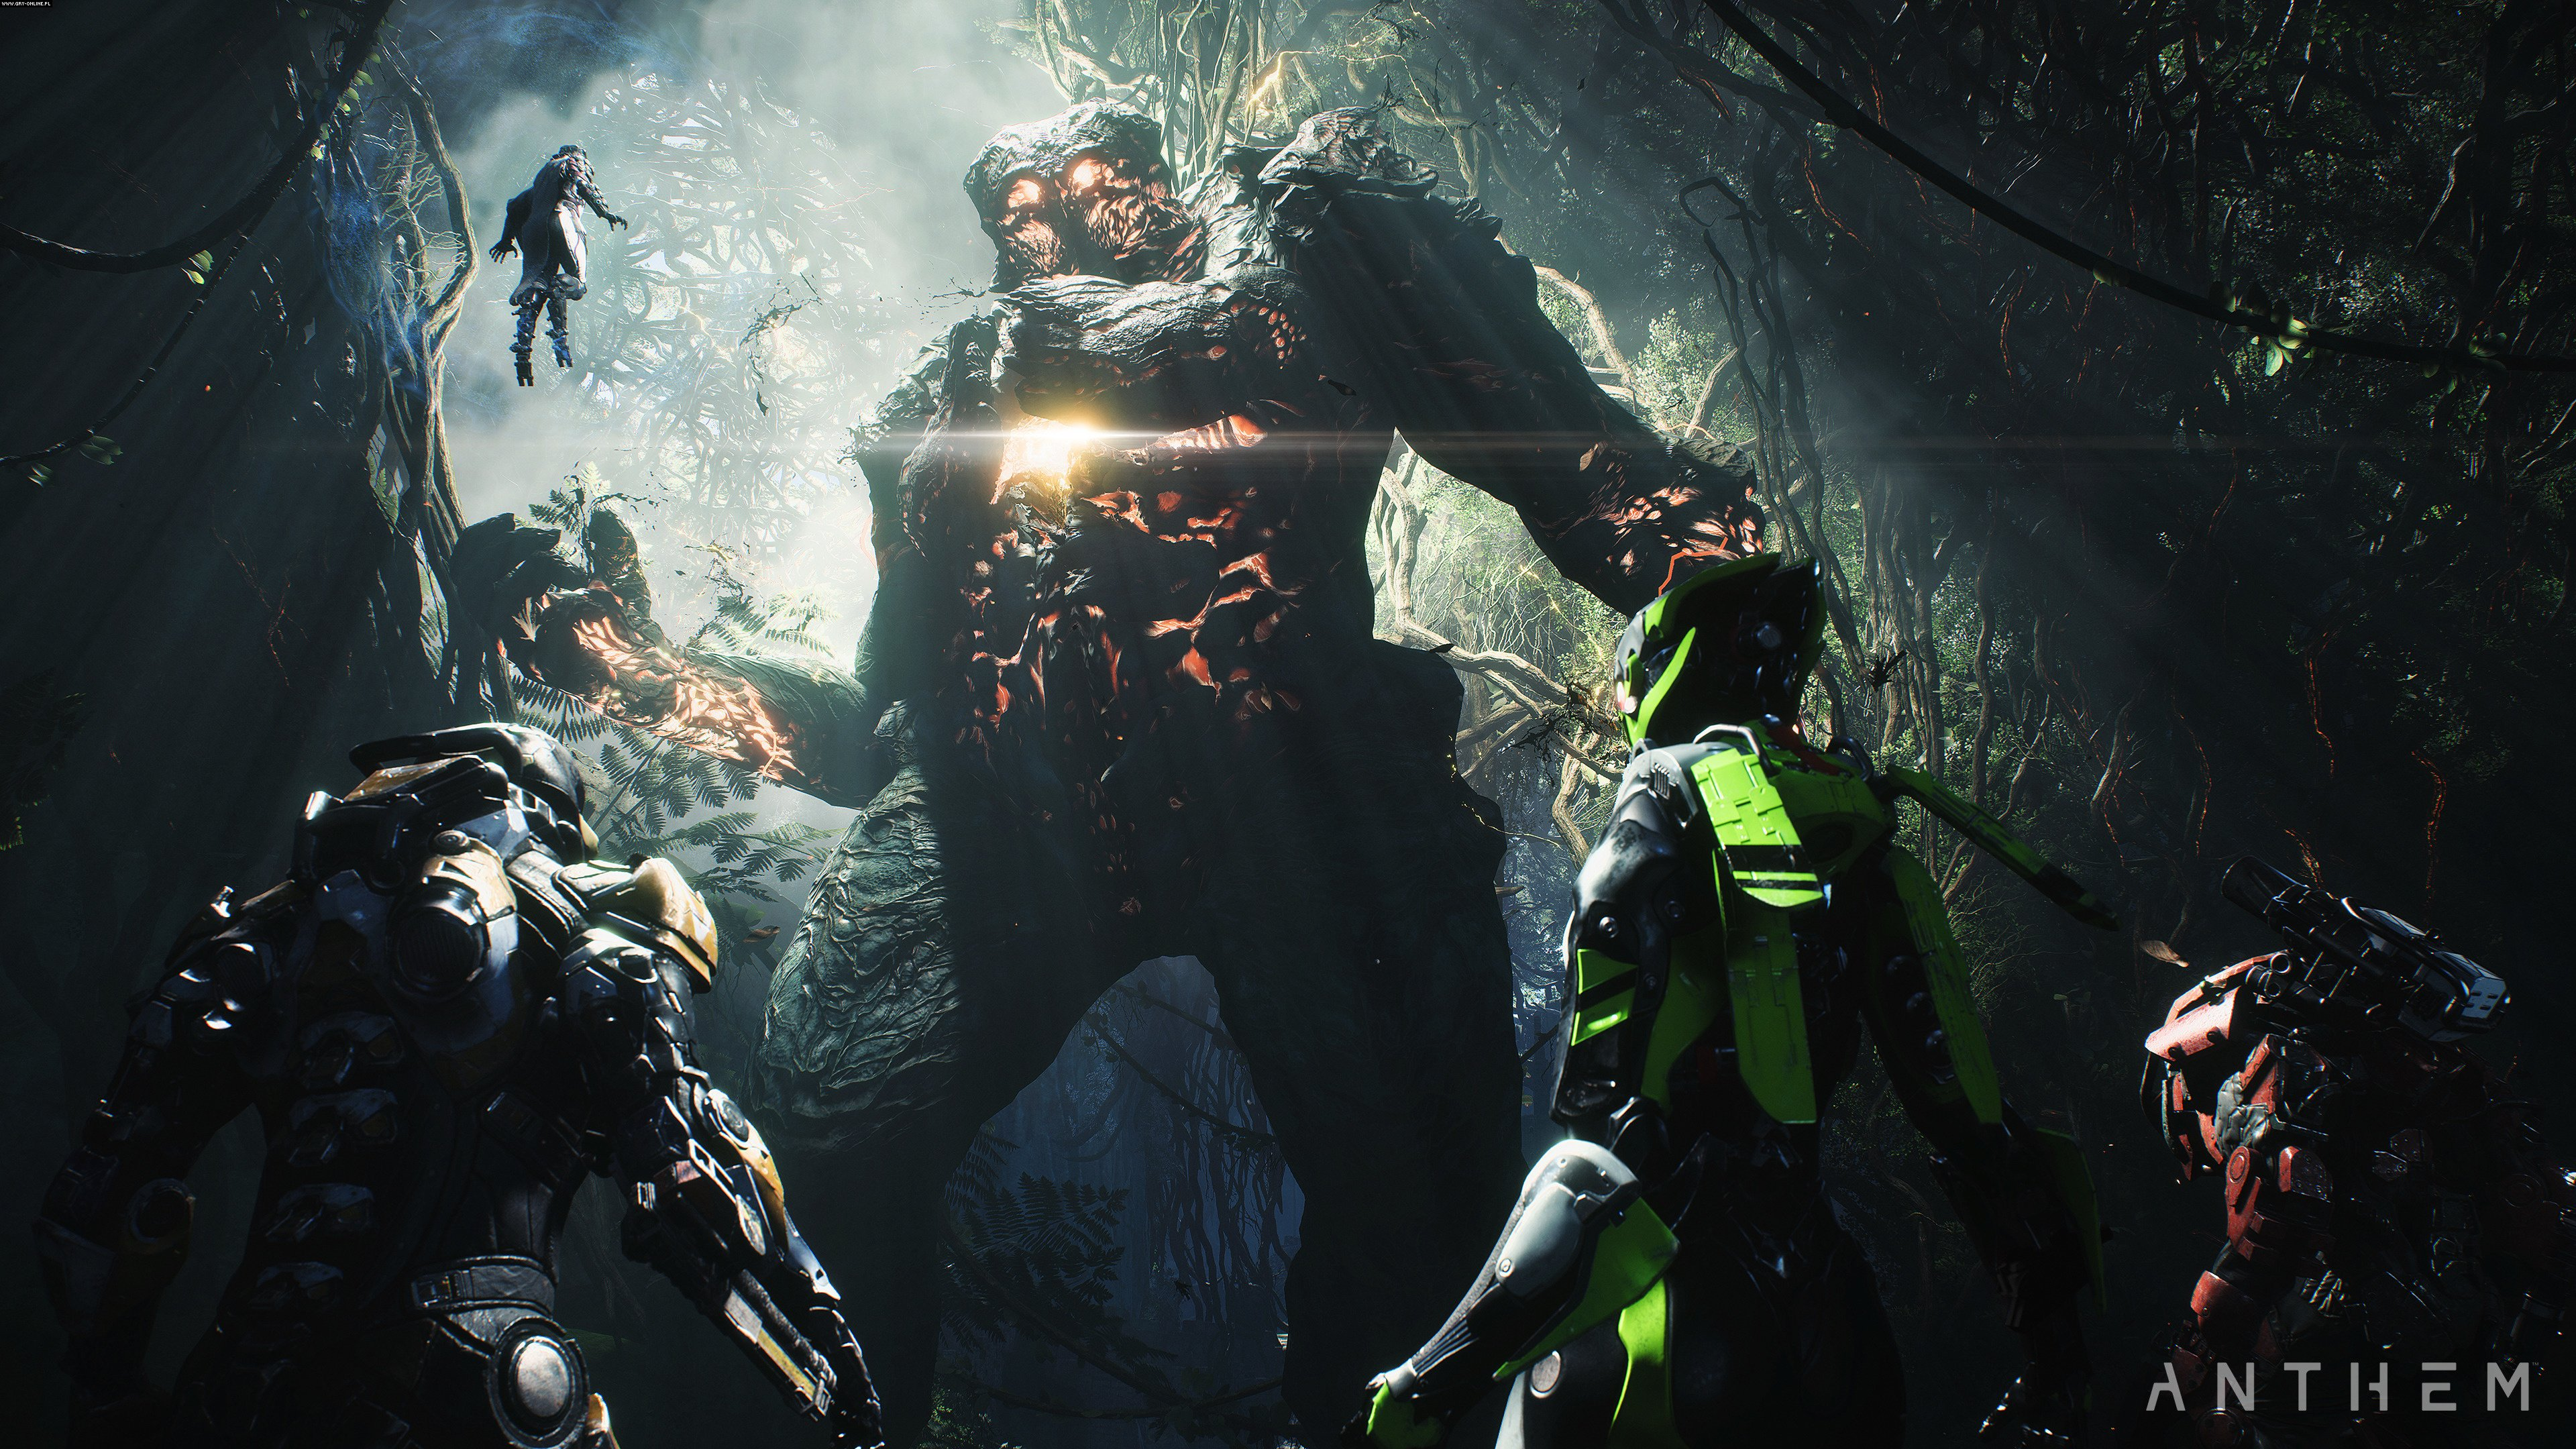 Anthem PC, PS4, XONE Games Image 27/34, BioWare Corporation, Electronic Arts Inc.